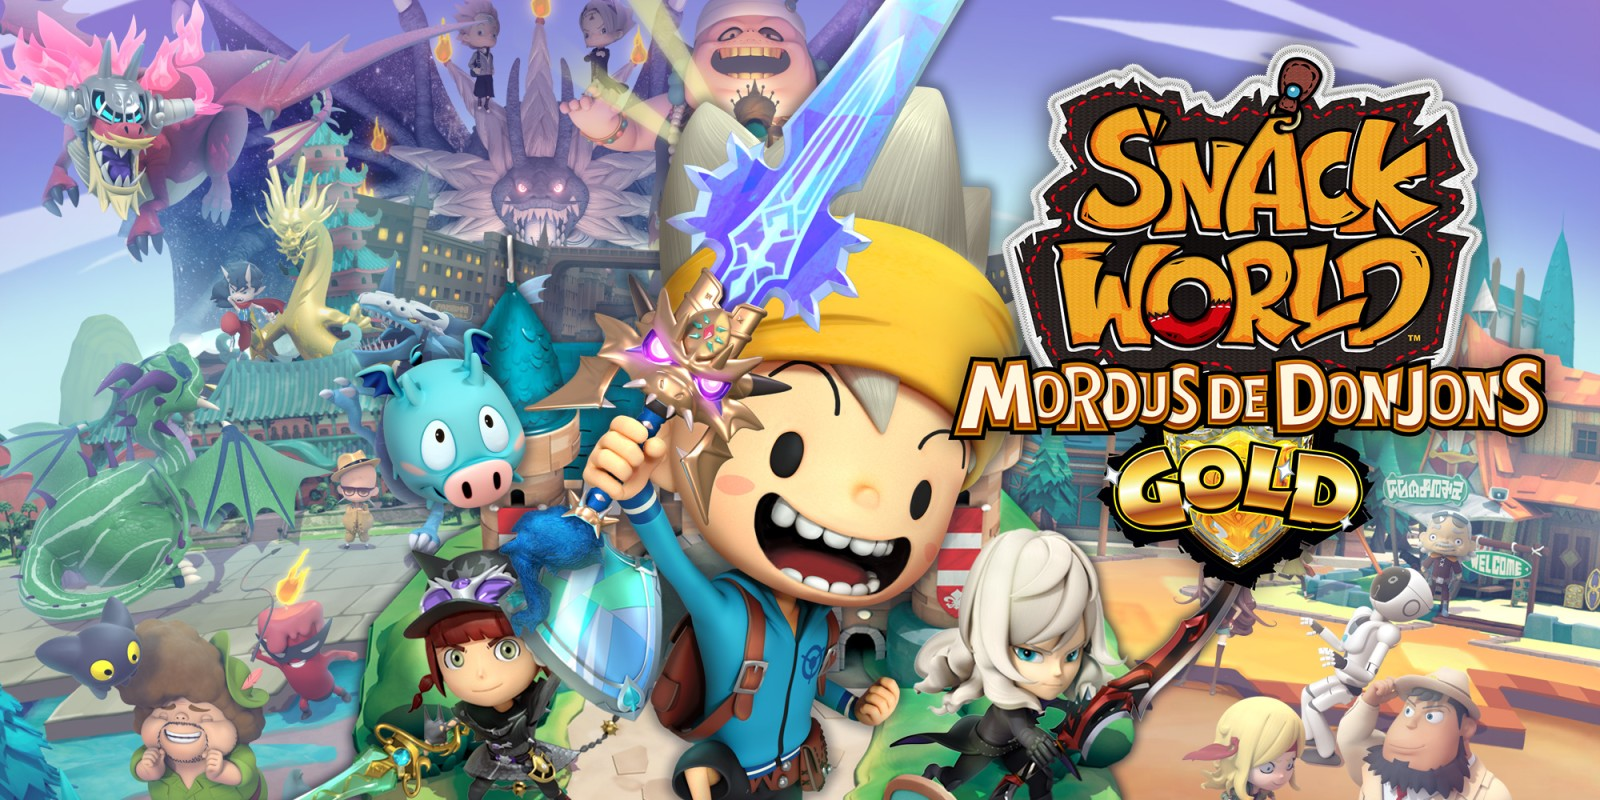 SNACK WORLD: MORDUS DE DONJONS – GOLD